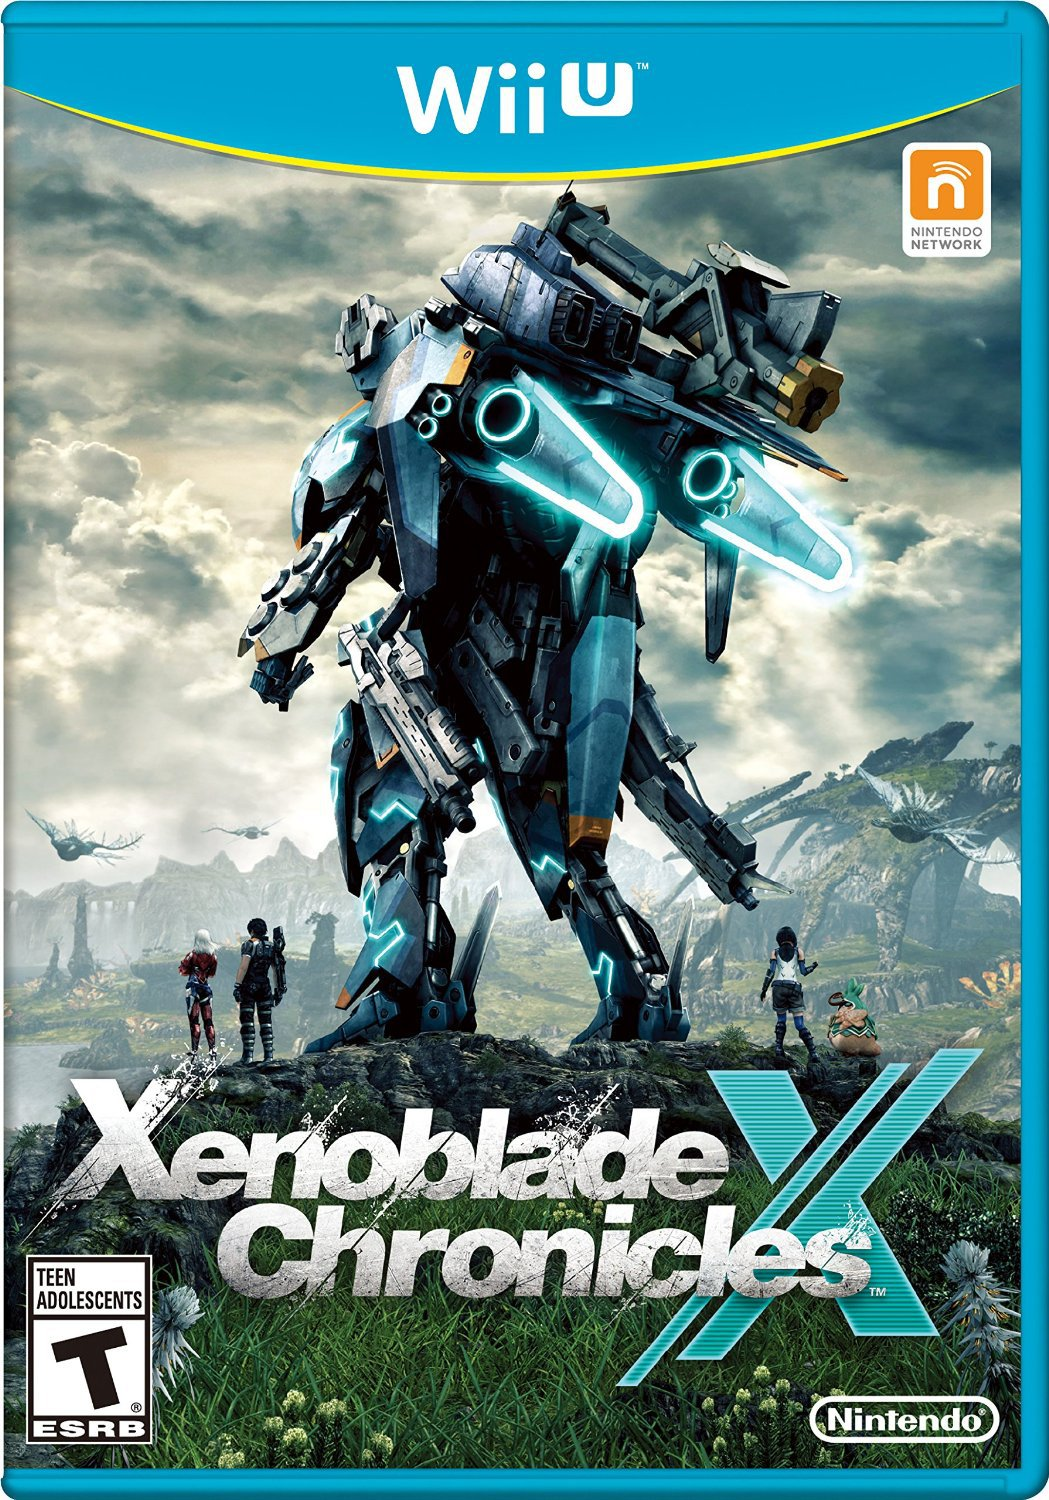 Xenoblade Chronicles X Wii U Physical Game Disc US